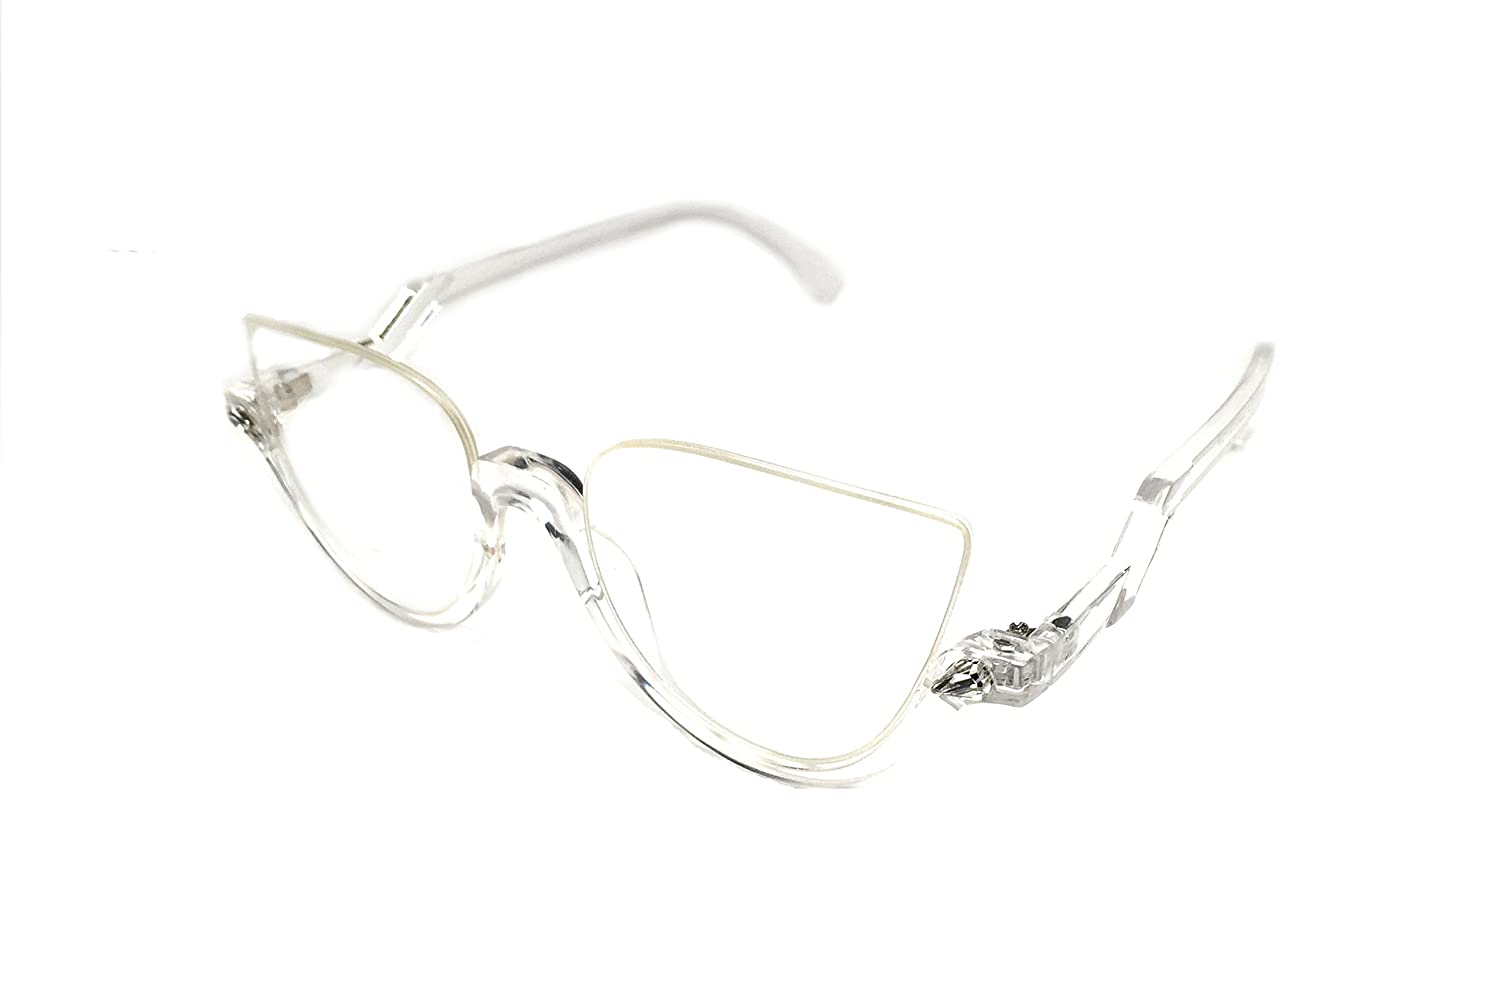 e8ec54c0076 Amazon.com  WebDeals - Cateye Chic Modern Open Top Frame Sunglasses or Clear  Glasses (Black Tortoise